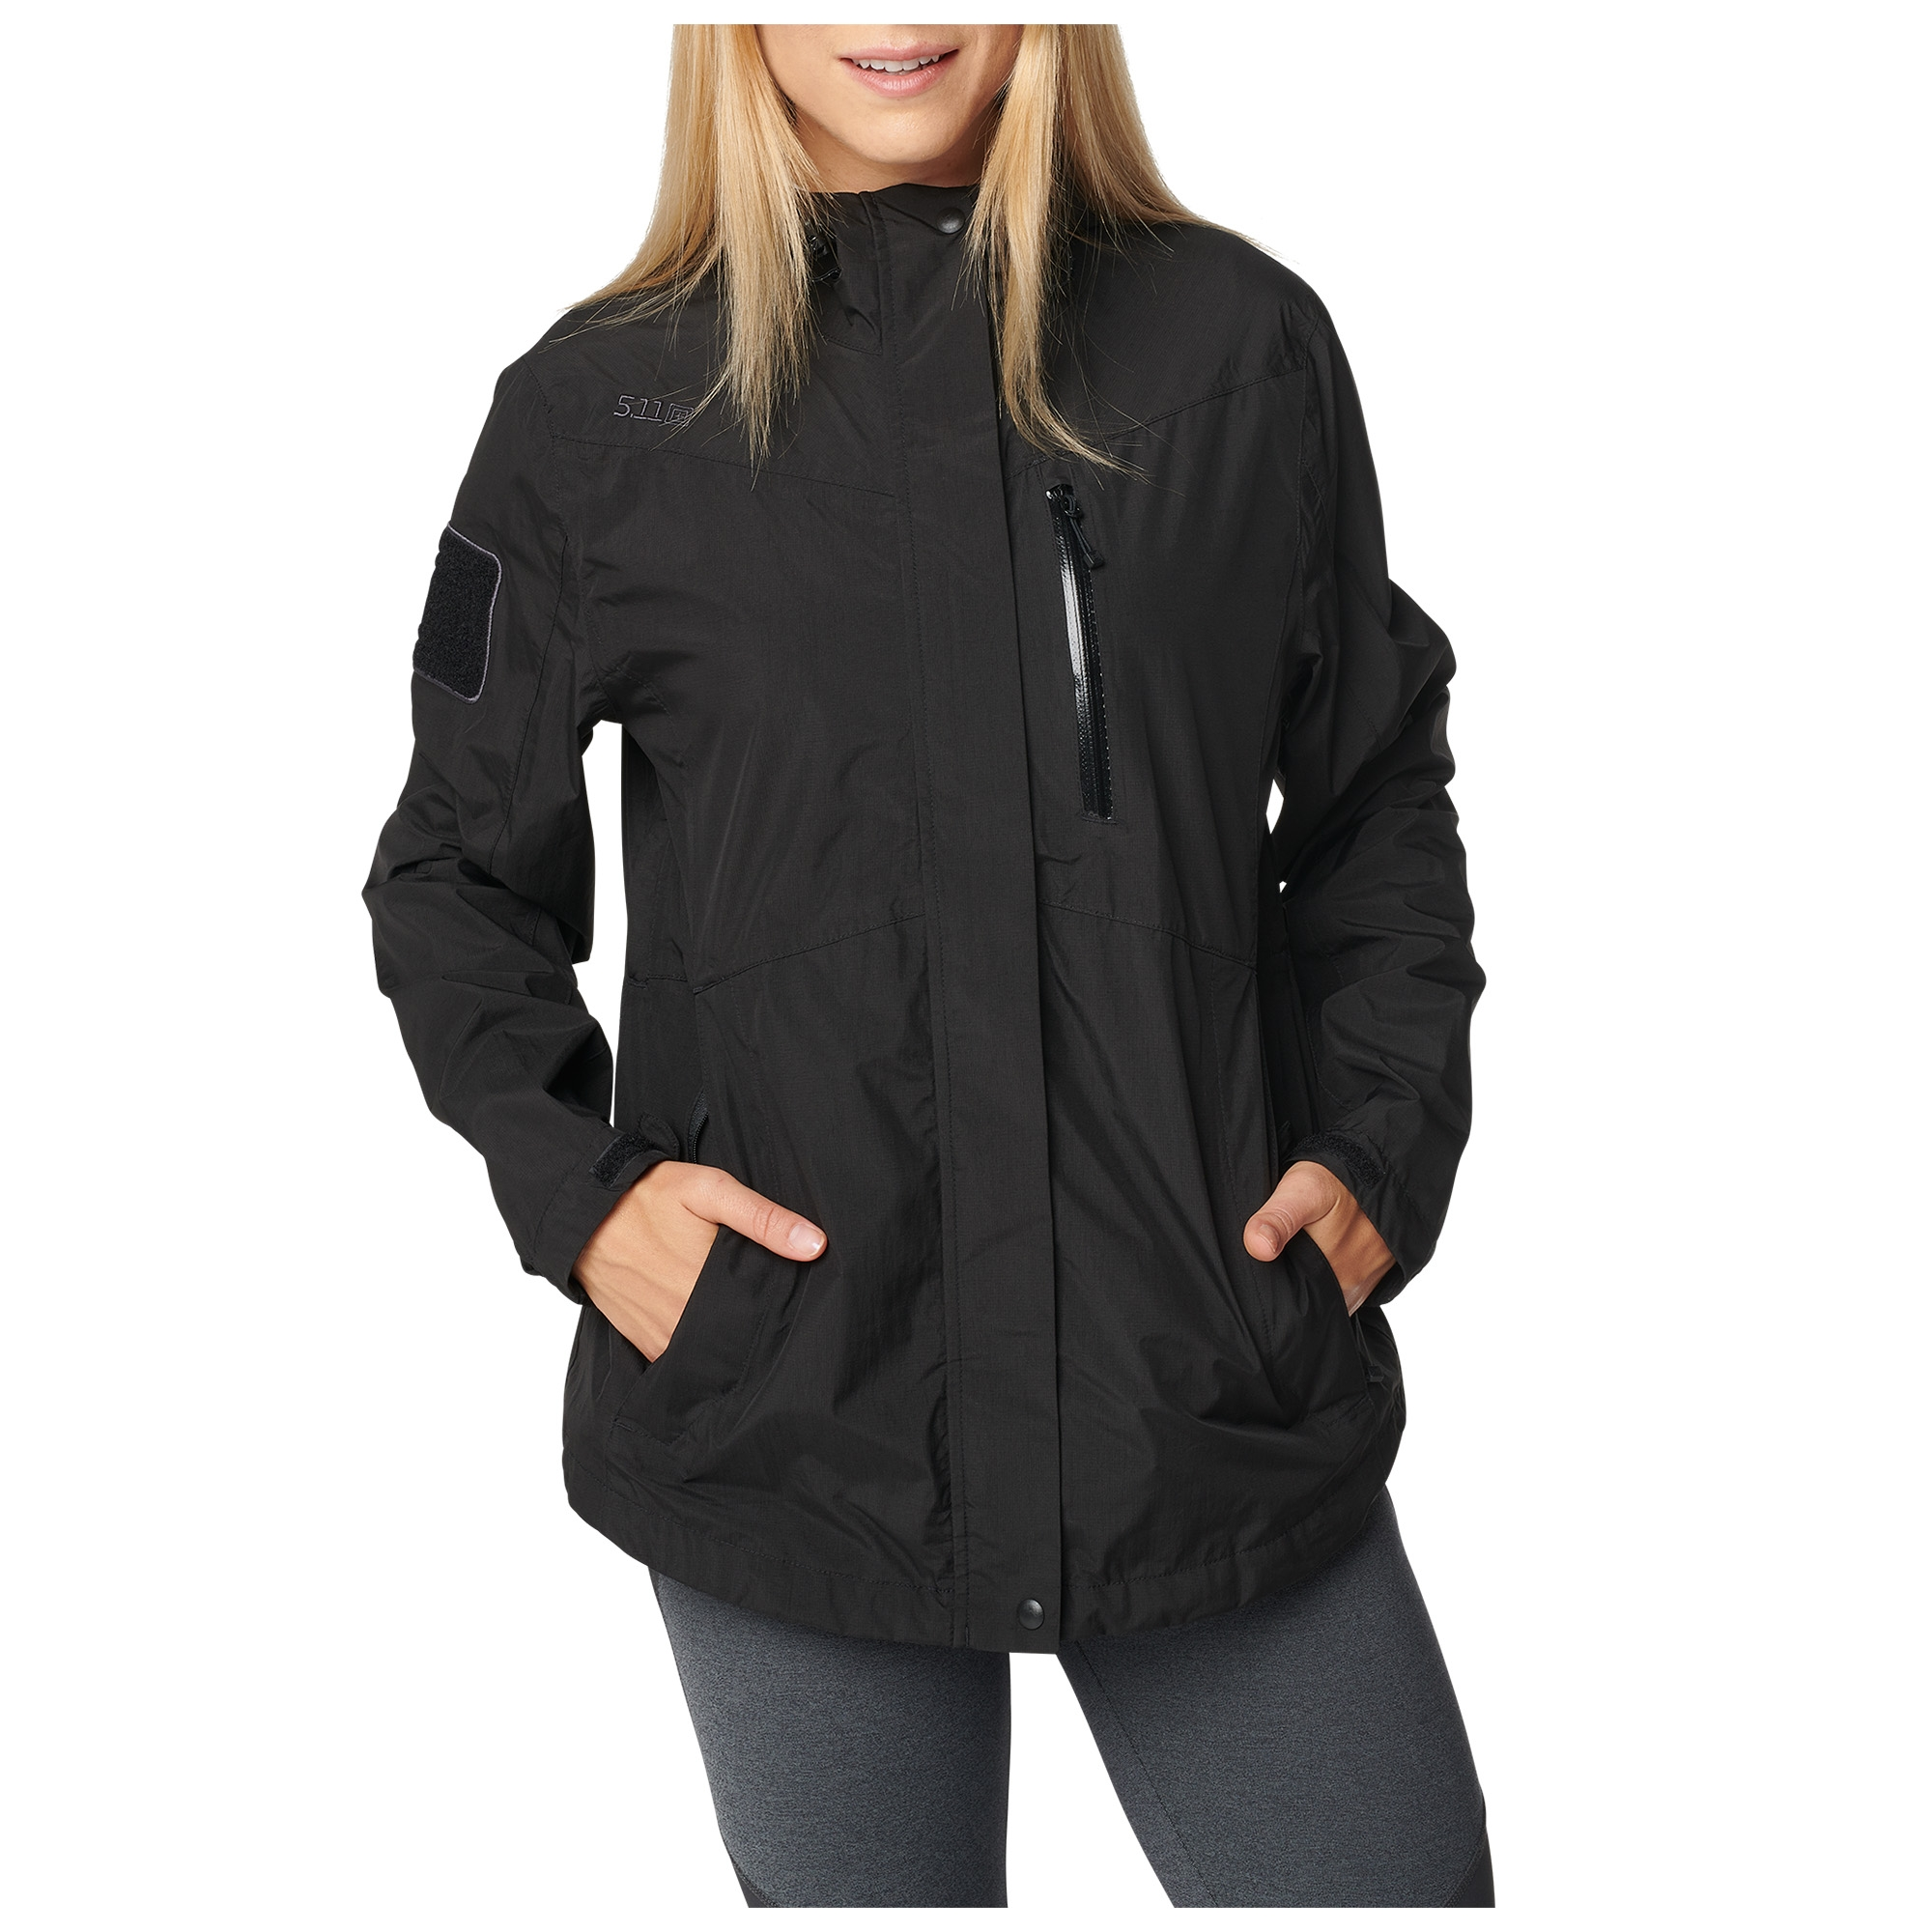 5.11 Tactical Women's Womens Aurora Shell Jacket thumbnail